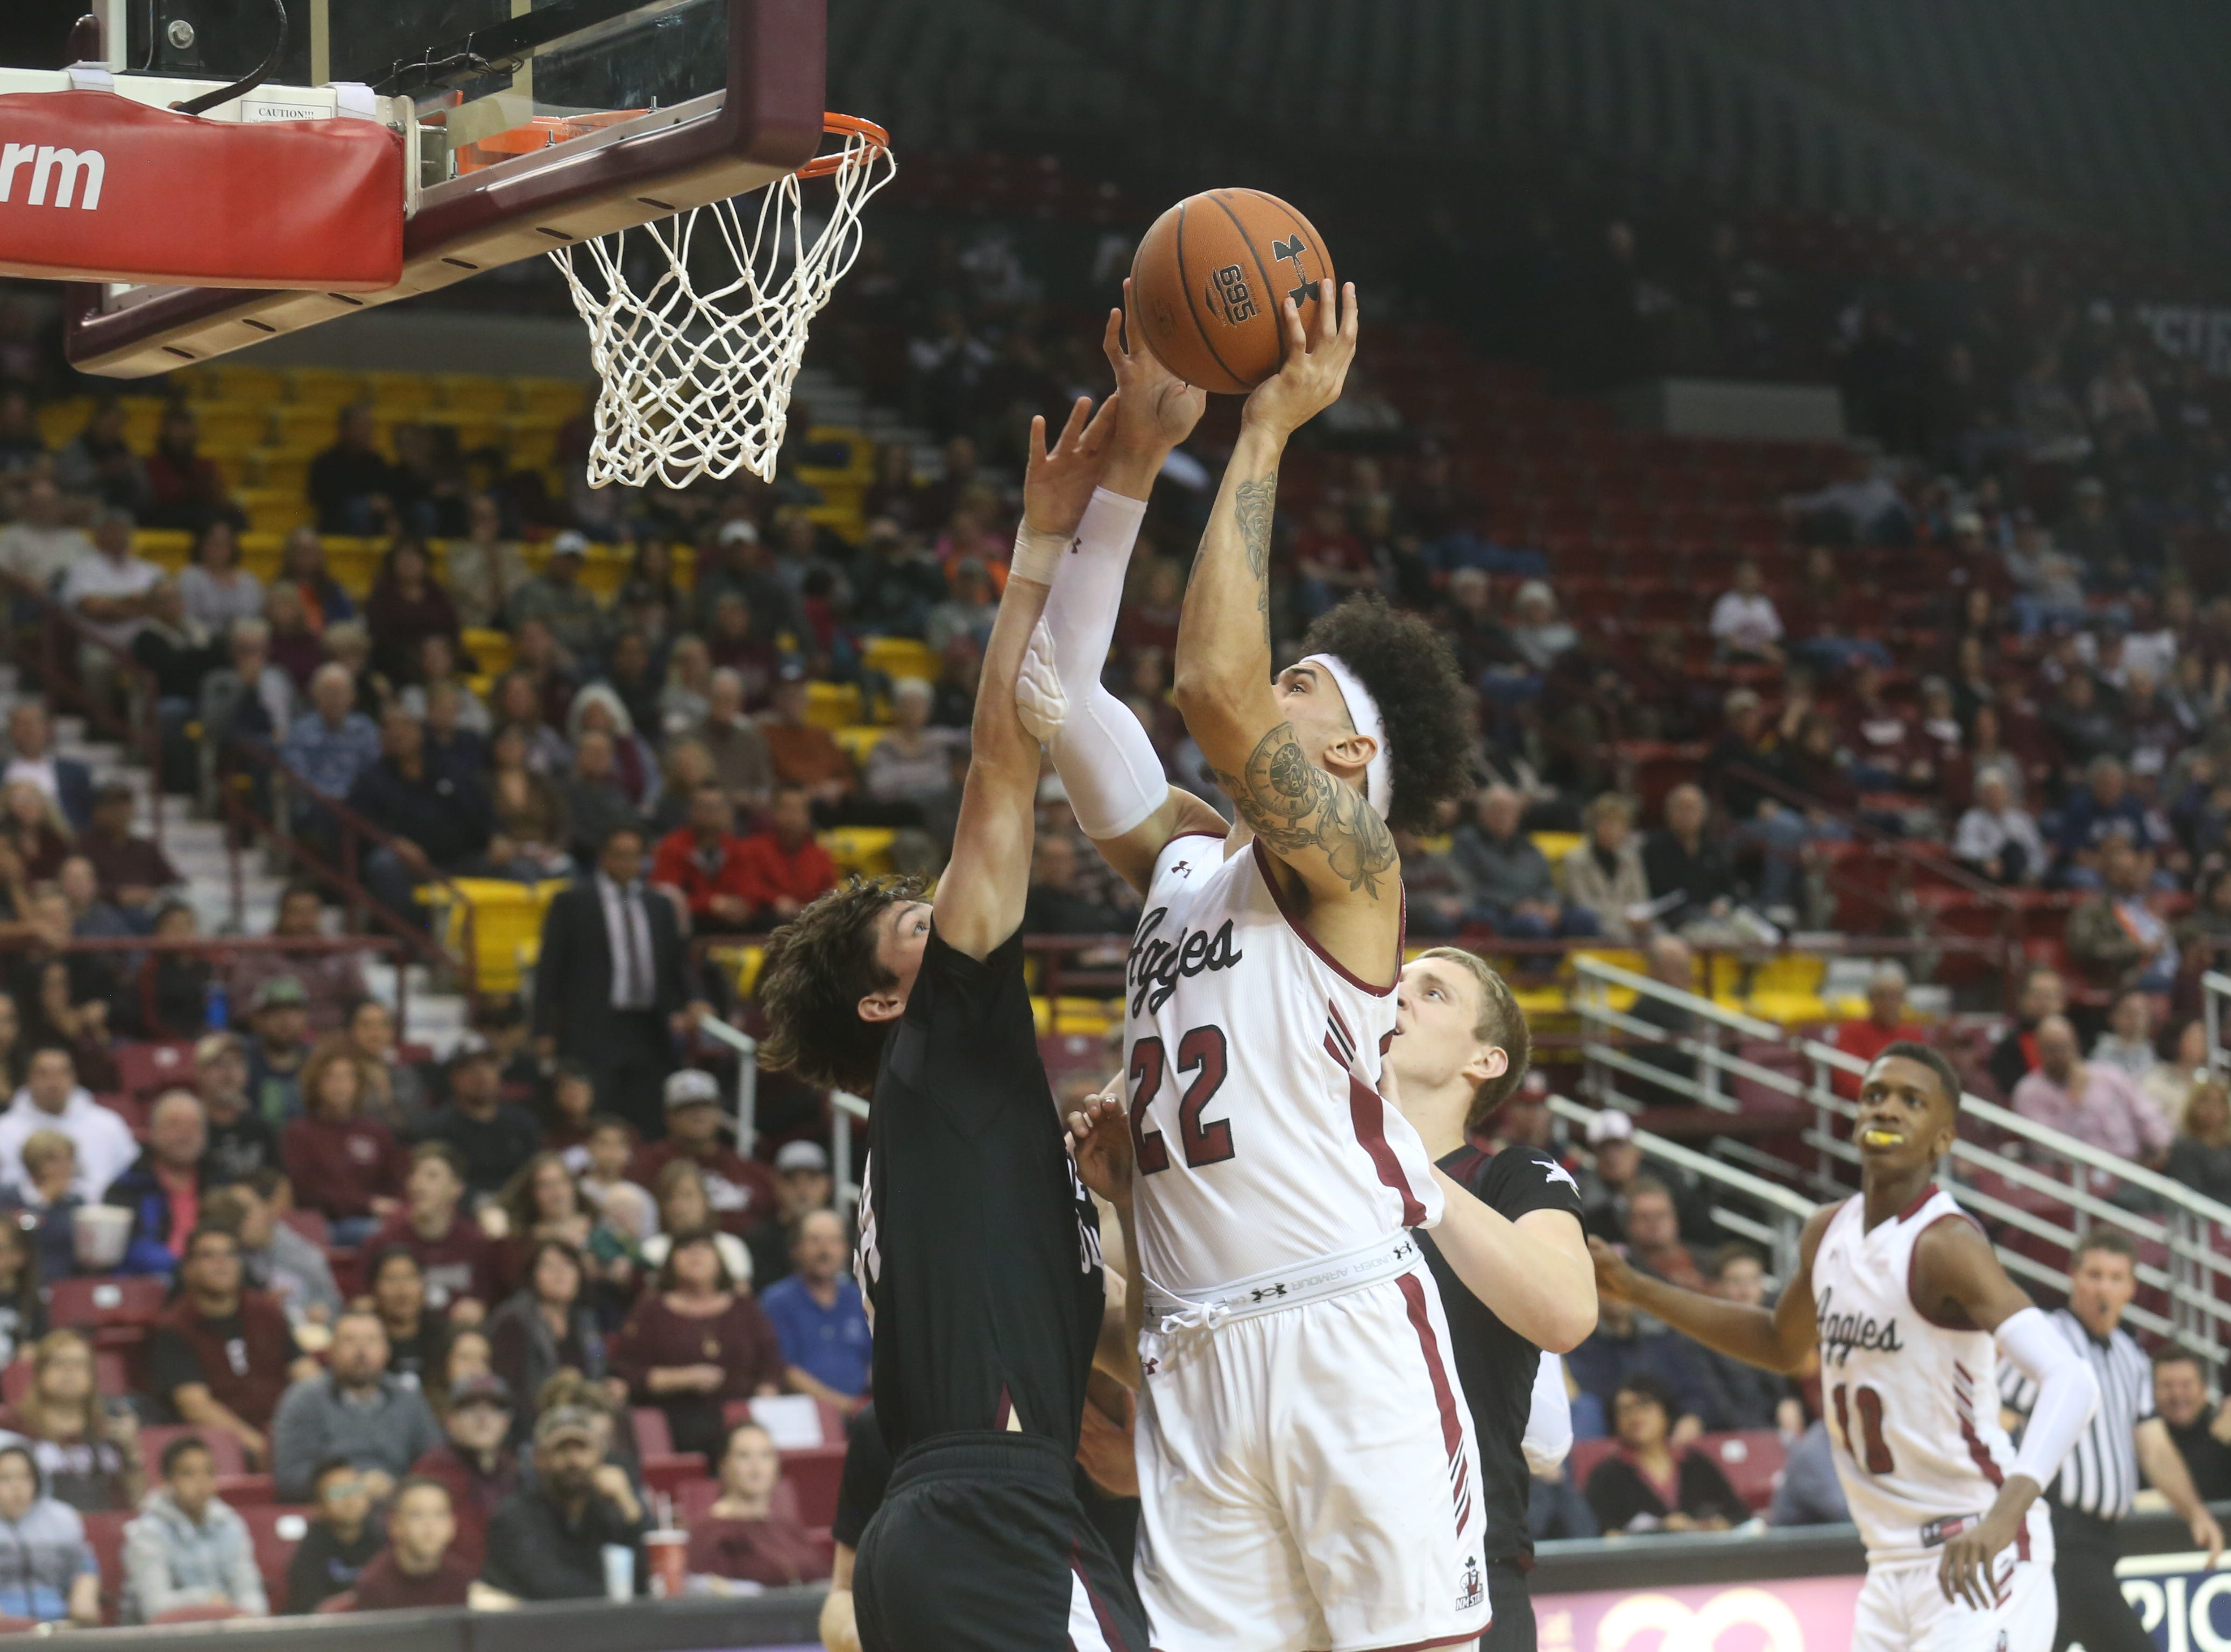 Eli Chuha rises above a Texas A&M International defender during the Aggies win over the visiting Dustdevils on Feb. 20.